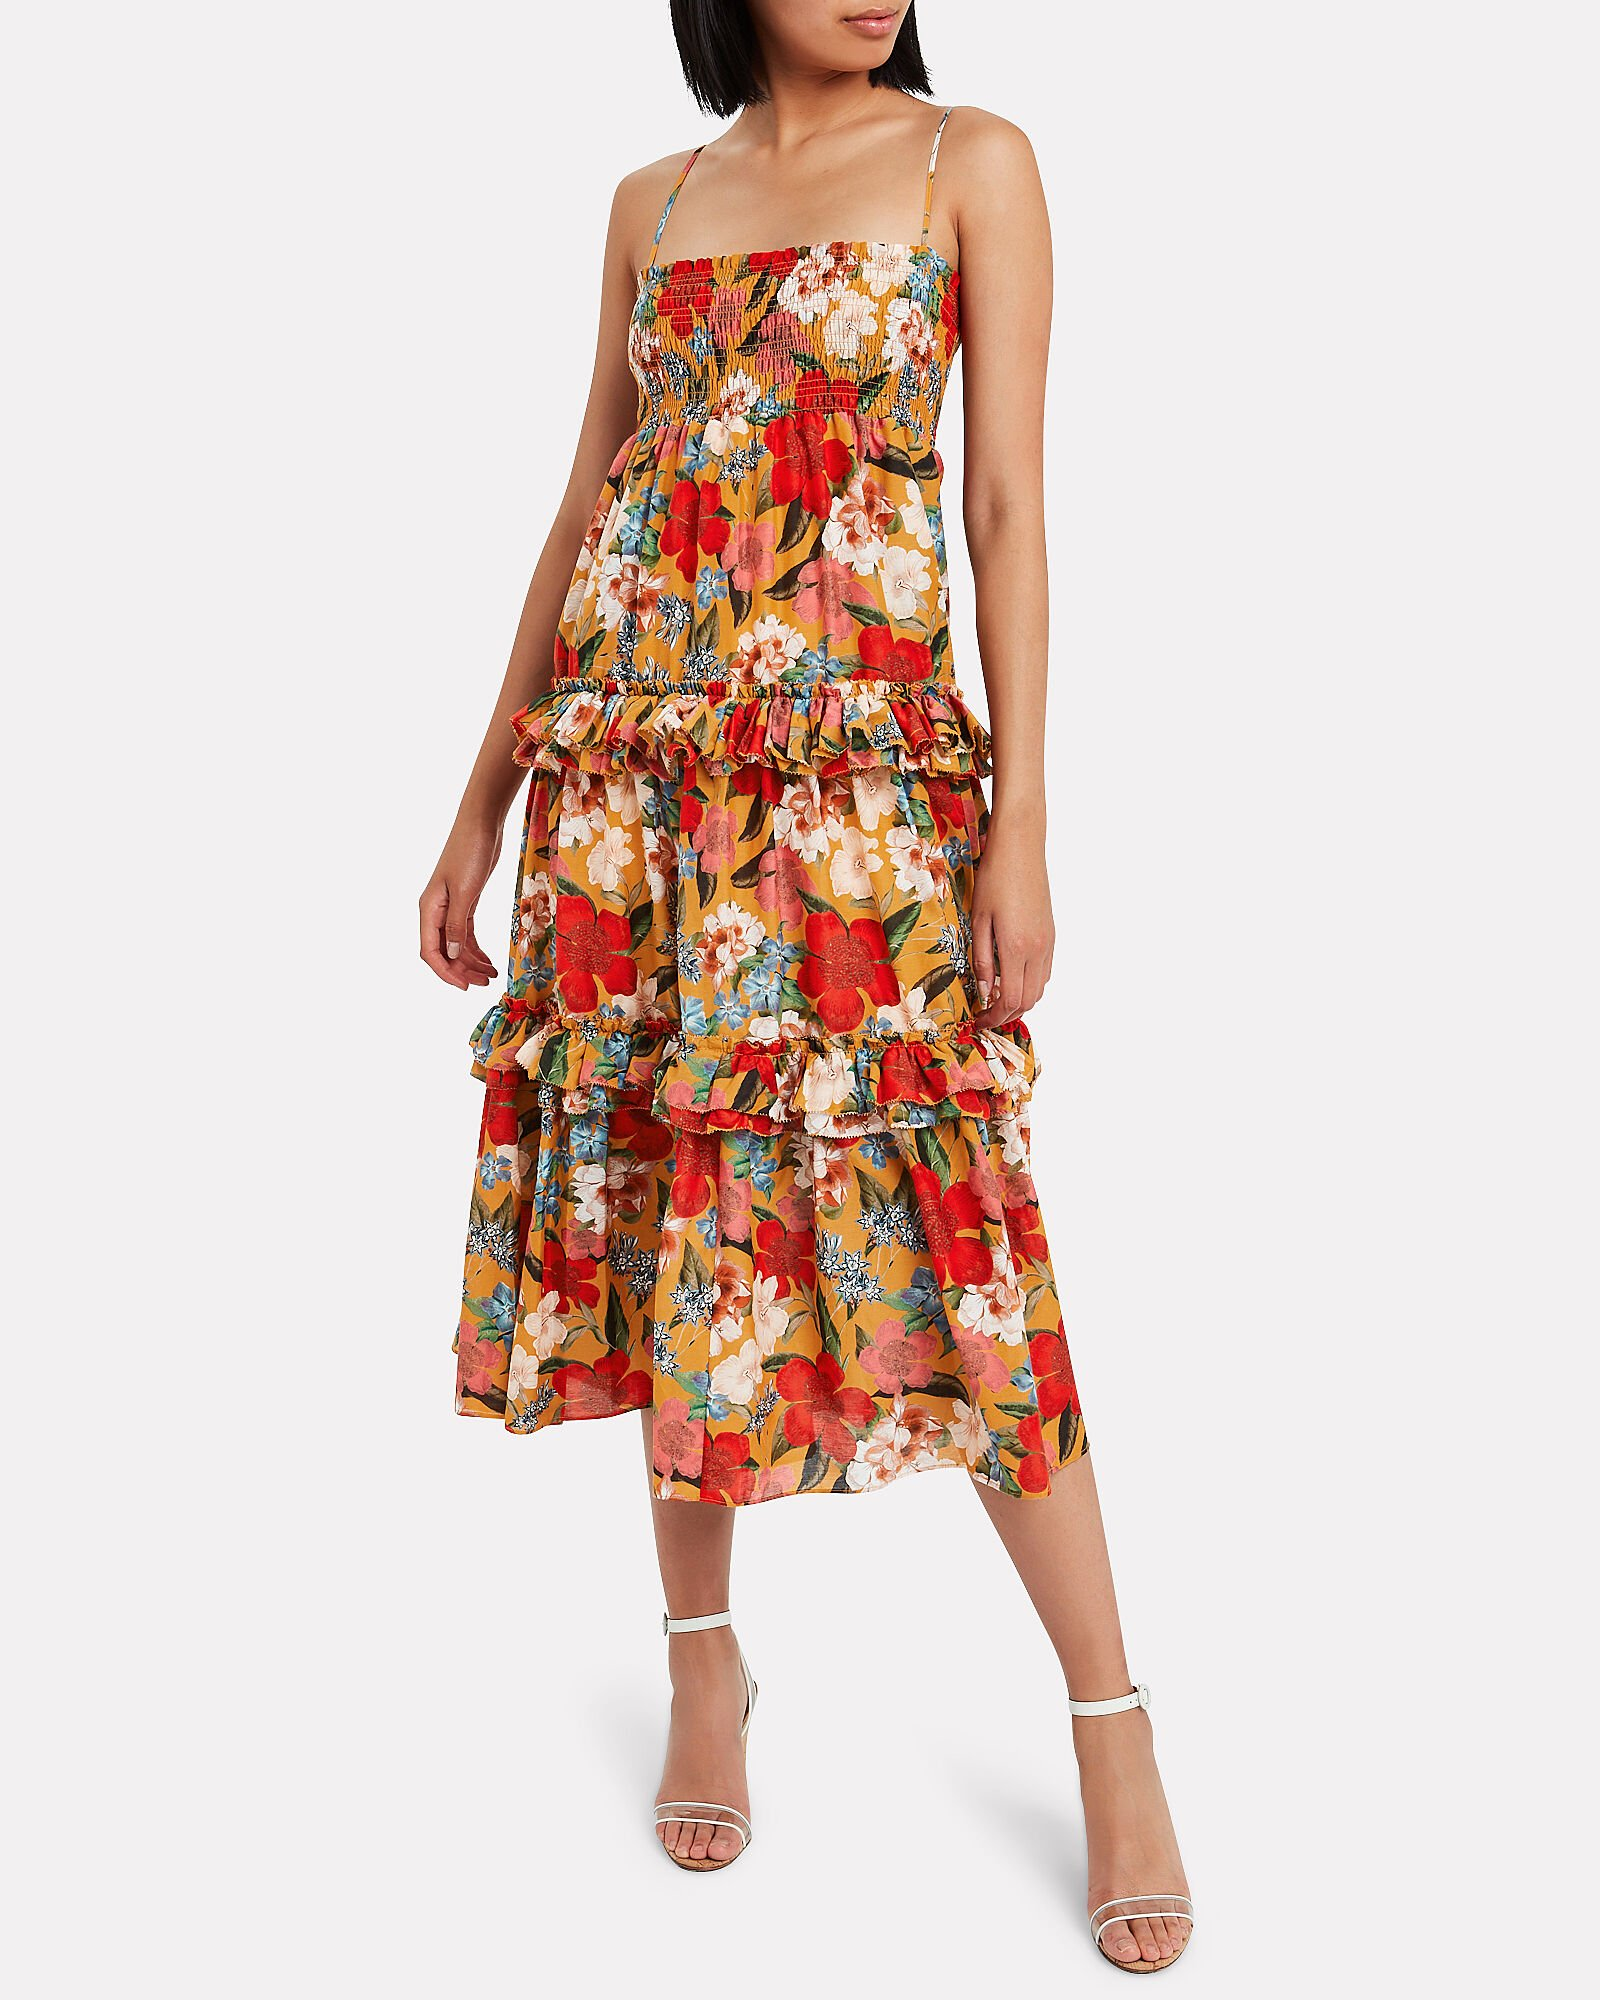 Smocked Floral Prairie Dress, YELLOW/RED, hi-res